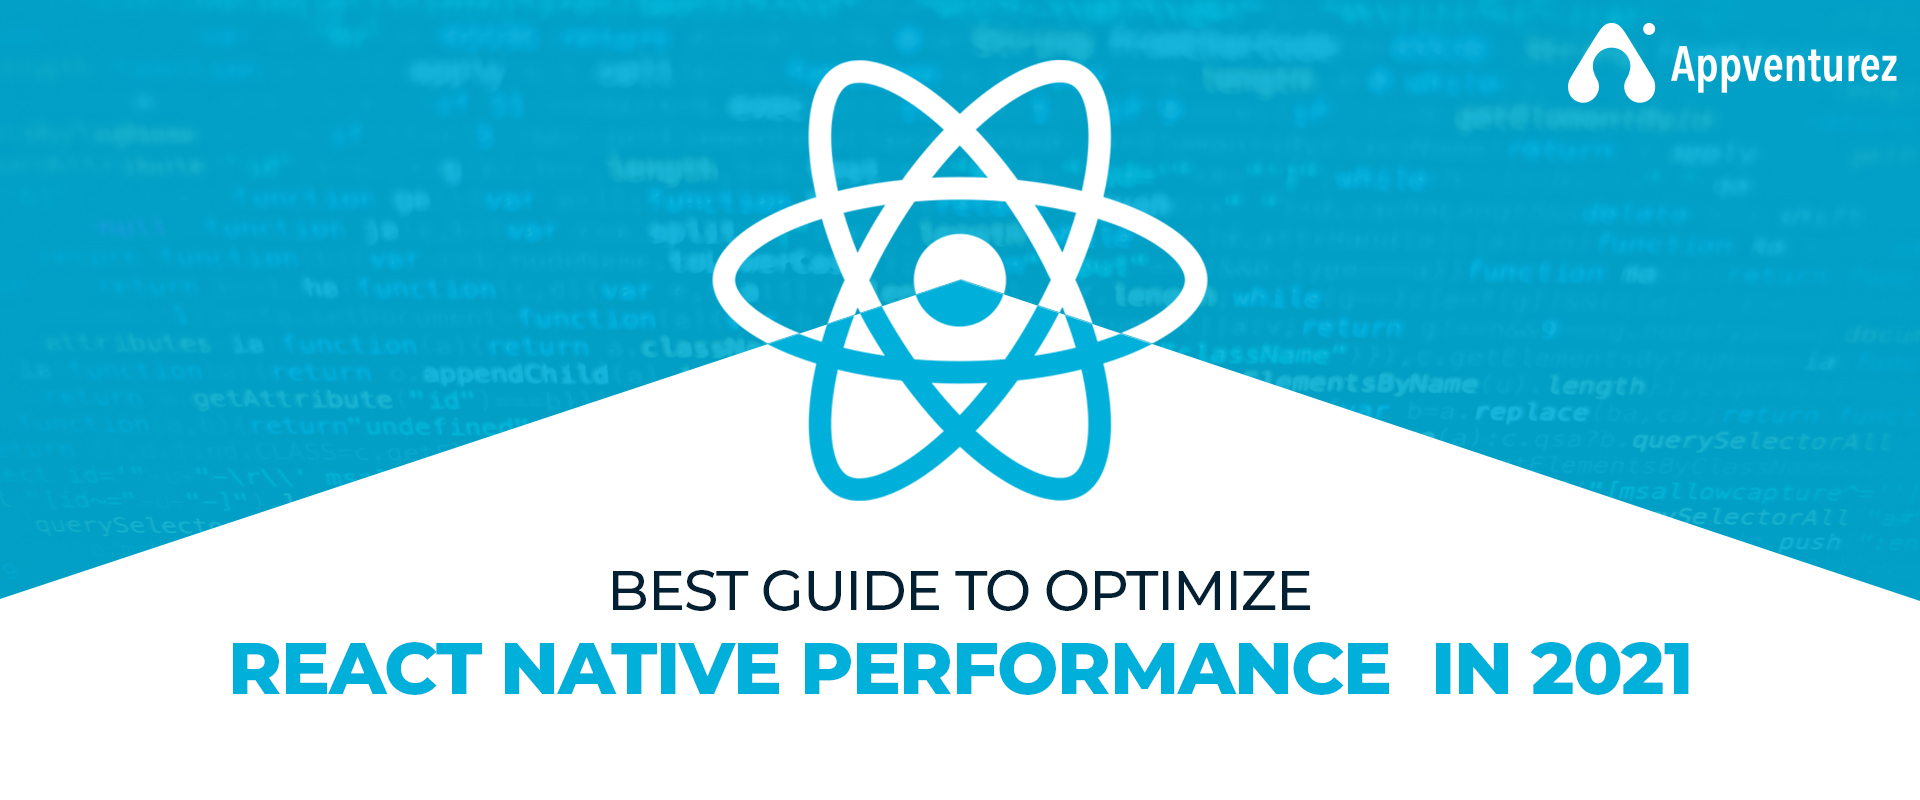 best guide to optimize react native performance